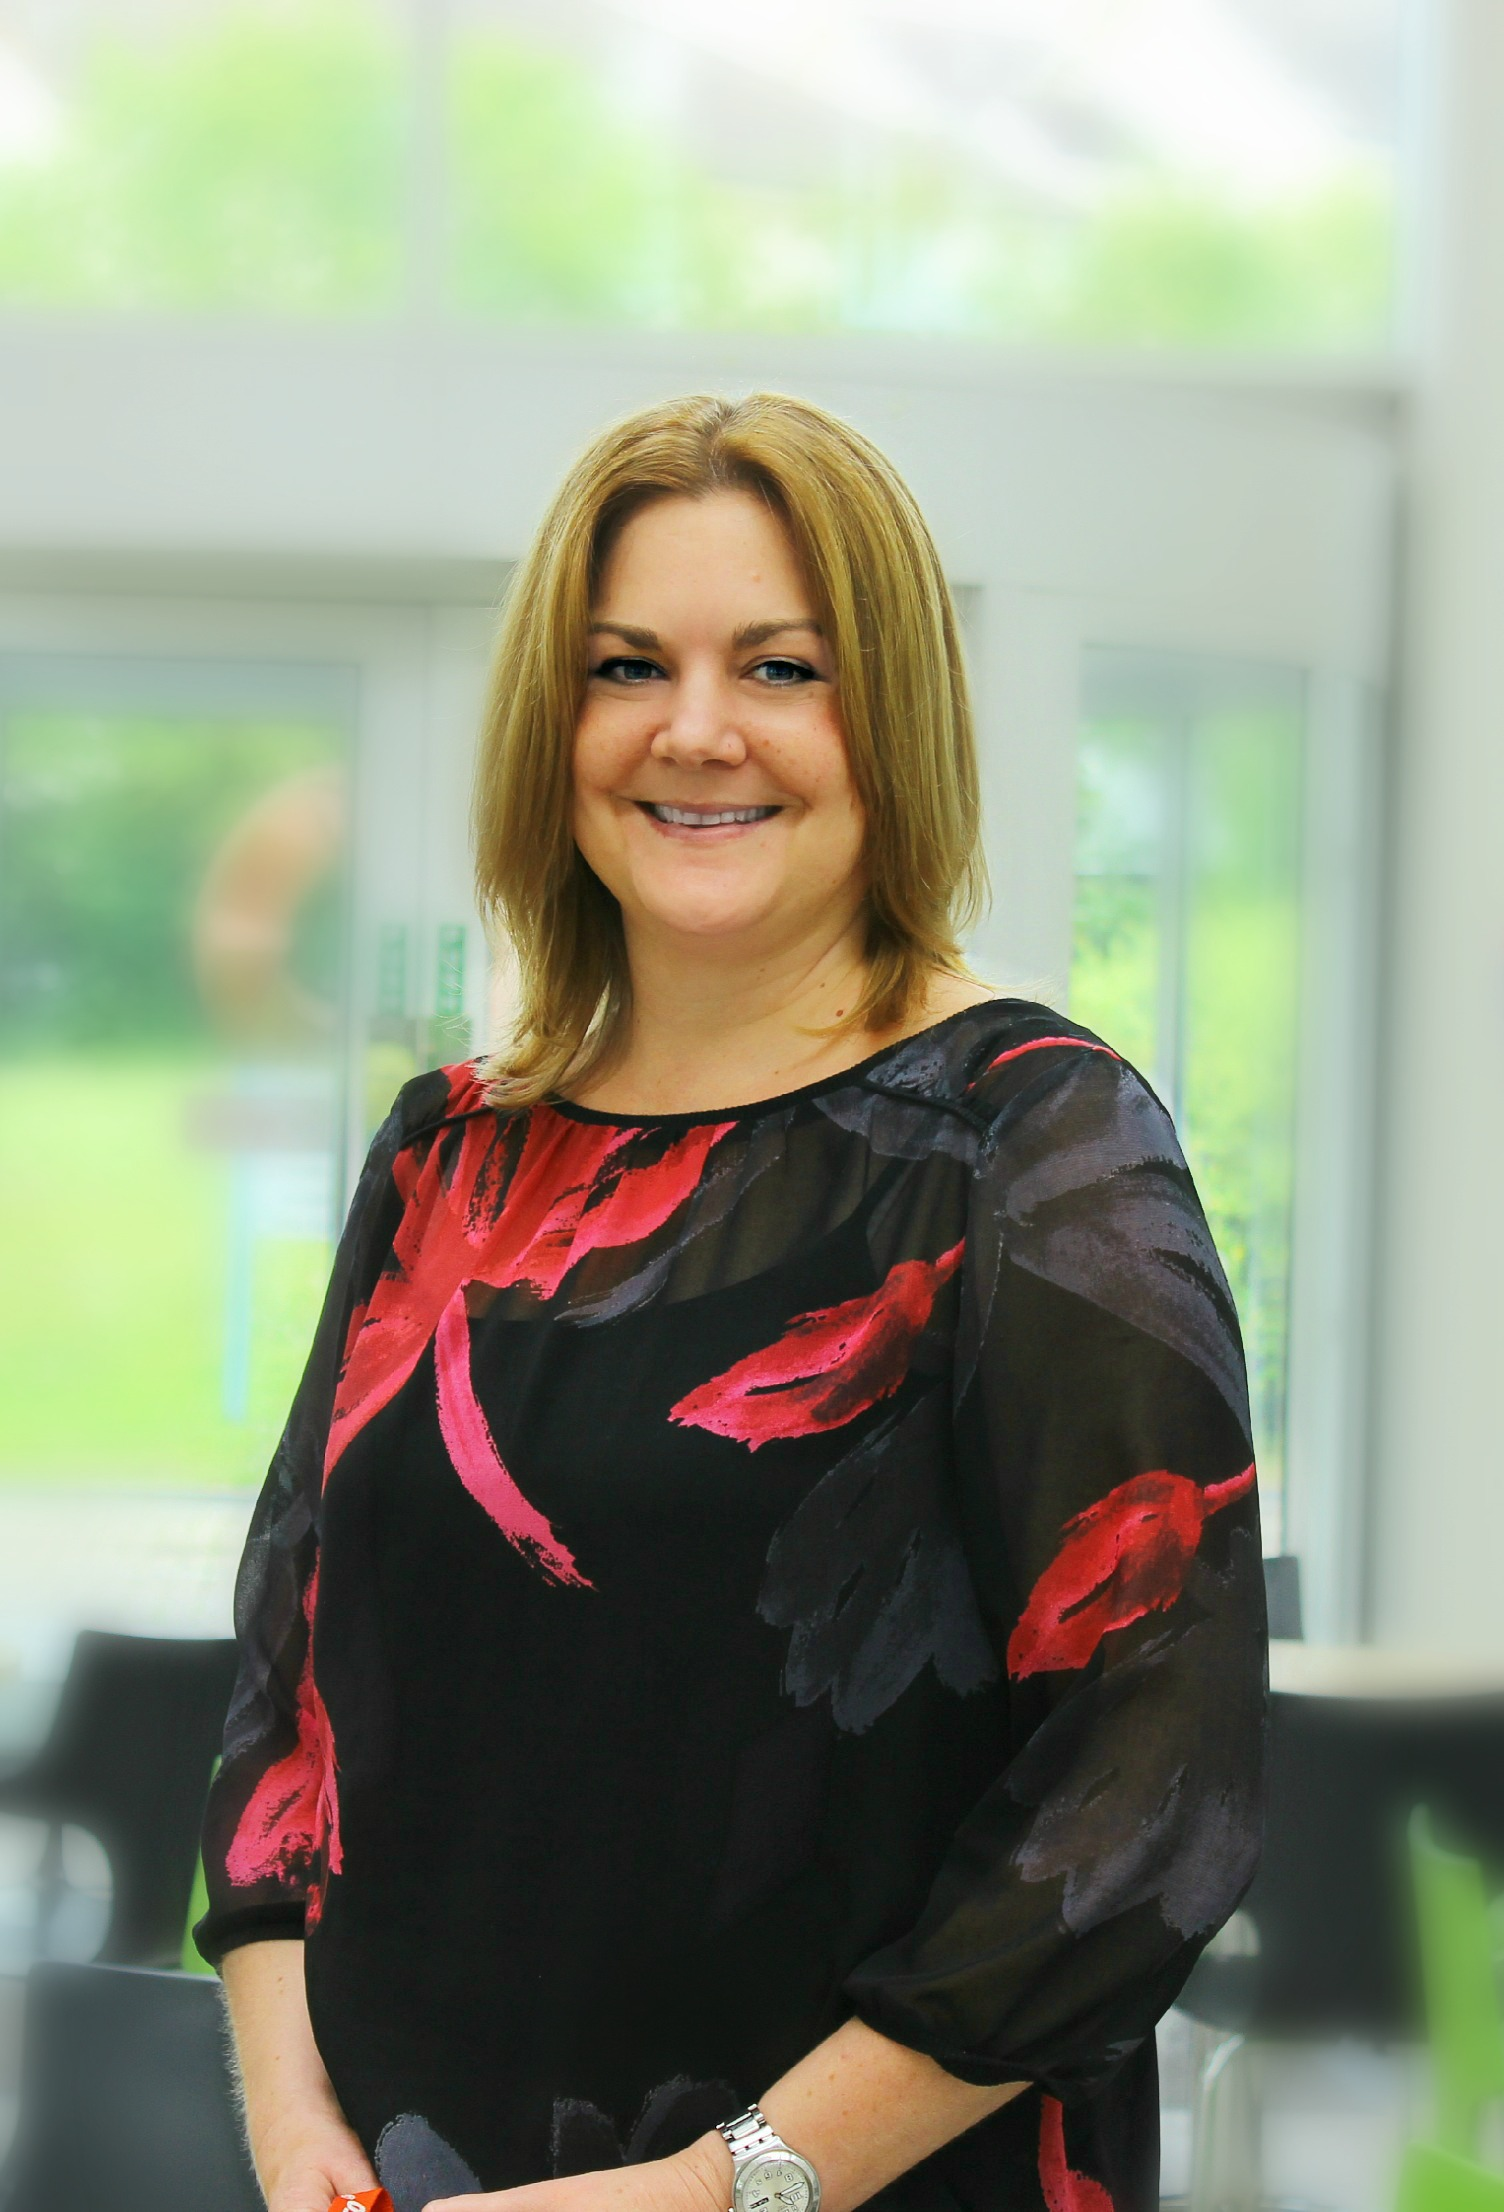 INTO University of Gloucestershire - Laurie Thorp - Admissions Assistant